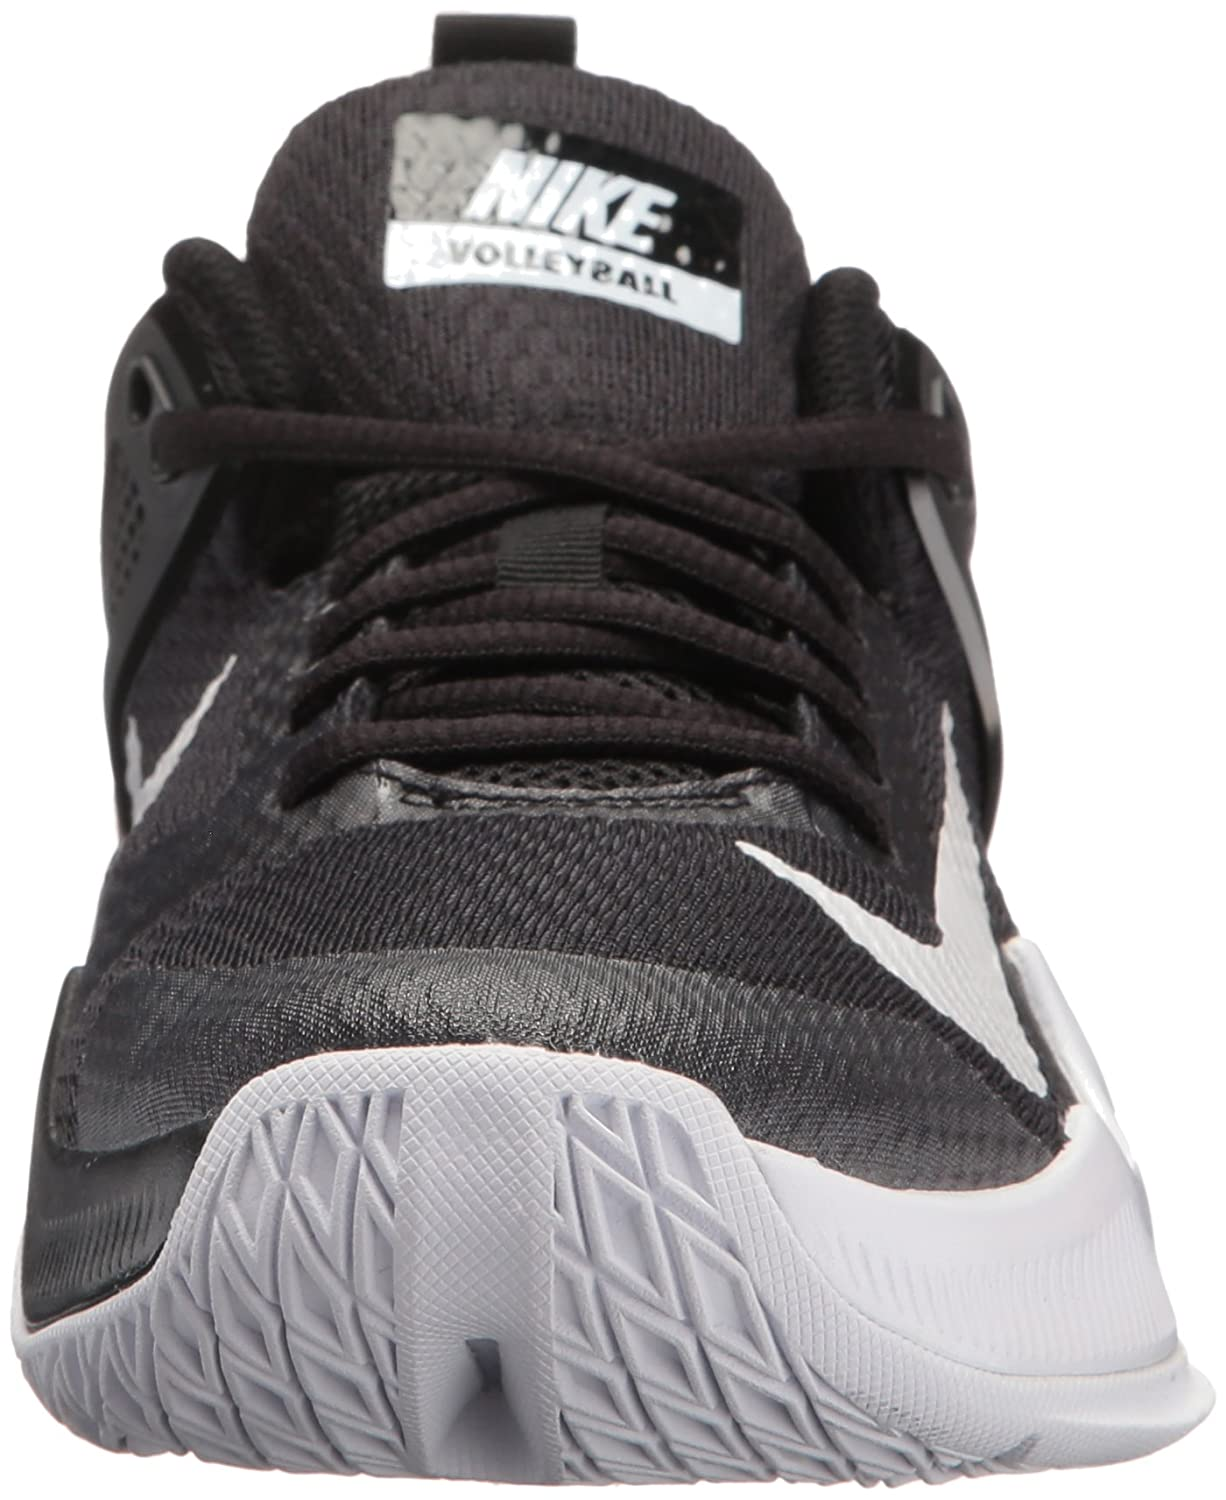 1706355c74871 Nike Women s Air Zoom Hyperace Volleyball Shoes Black White Size 11 M US   Buy Online at Low Prices in India - Amazon.in